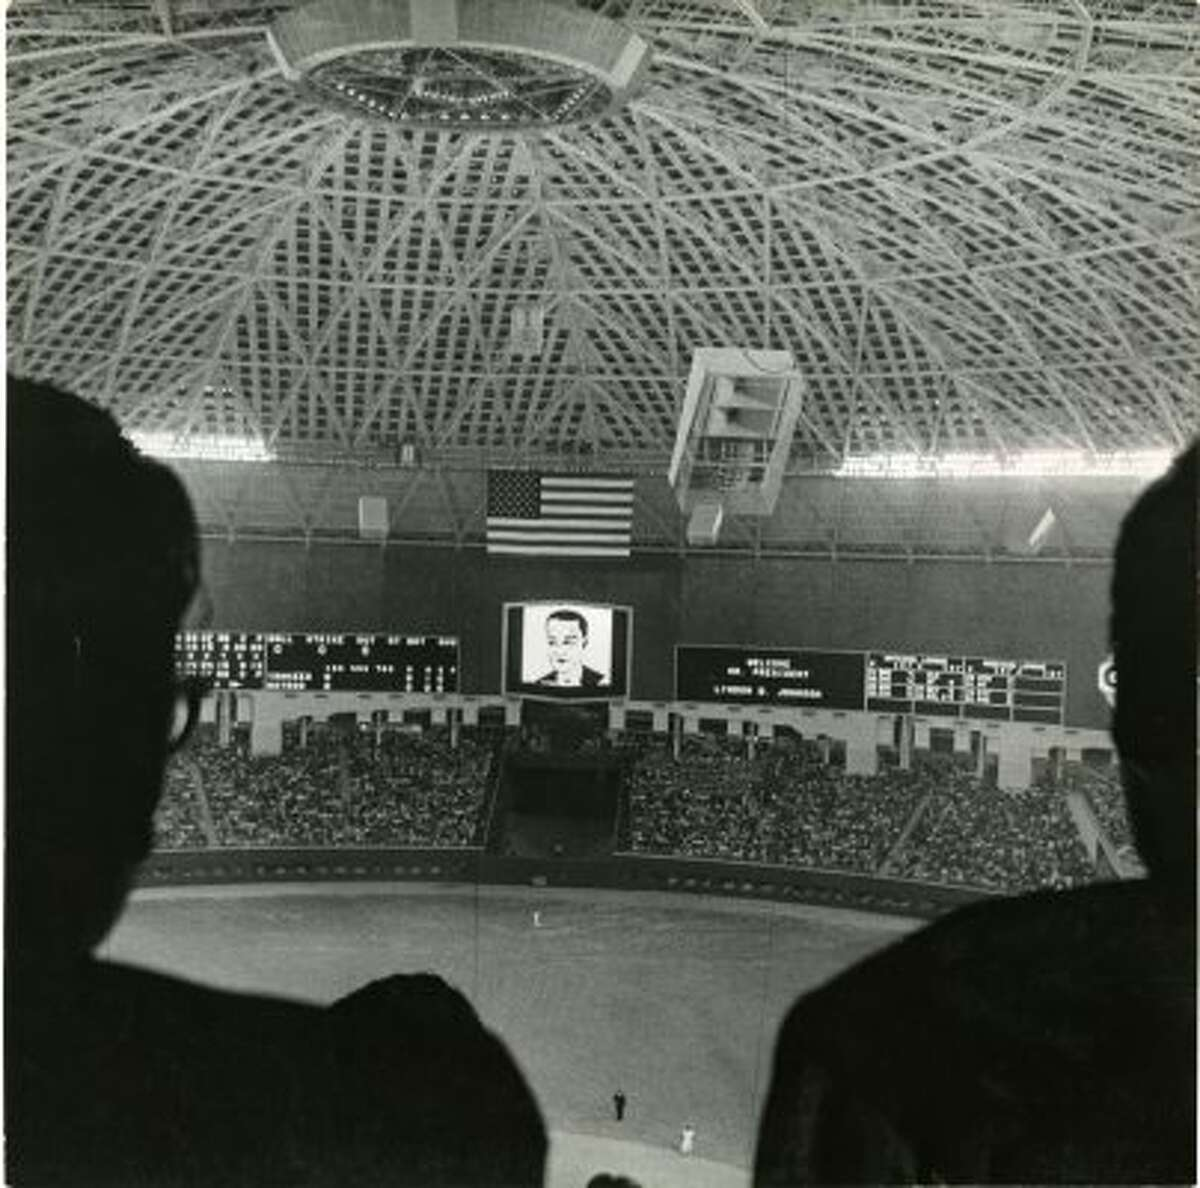 The Astrodome scoreboard lit up in 1965 to welcome President Lyndon Baines Johnson to the world's first indoor baseball game. (Curtis McGee / Houston Chronicle)